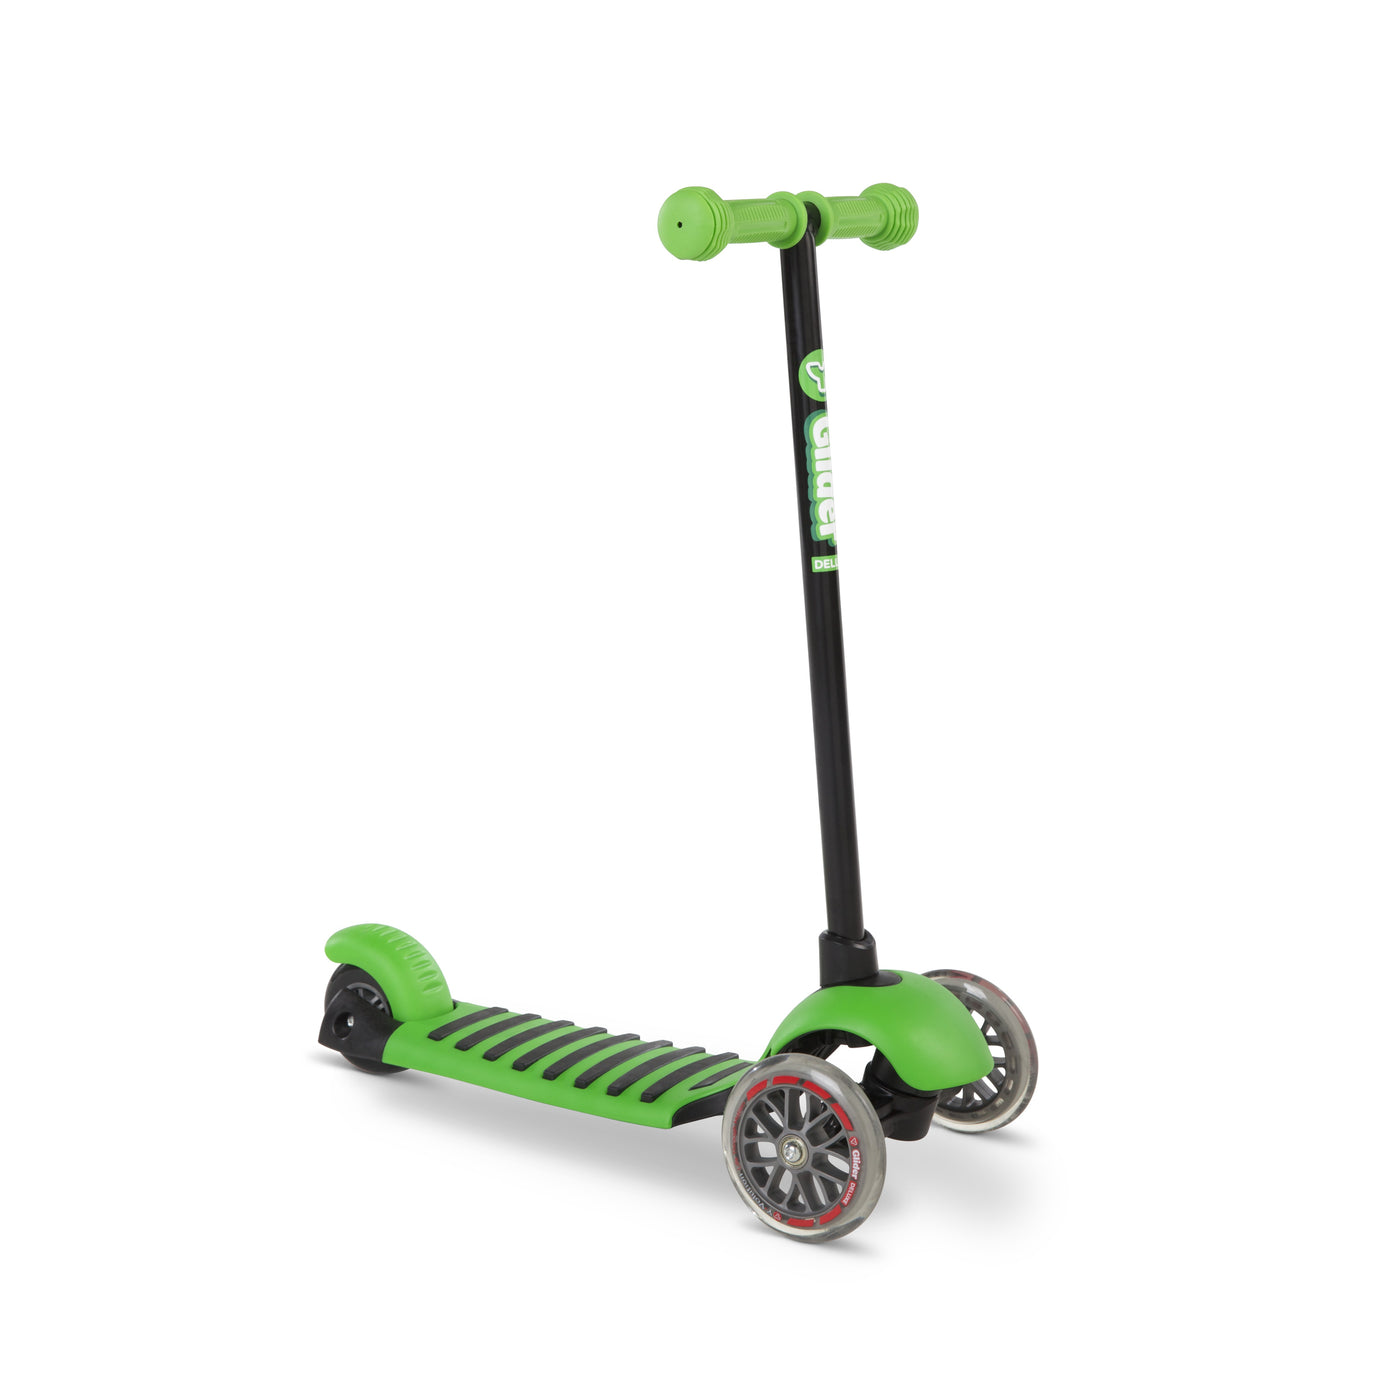 Y Glider Deluxe Scooter Green